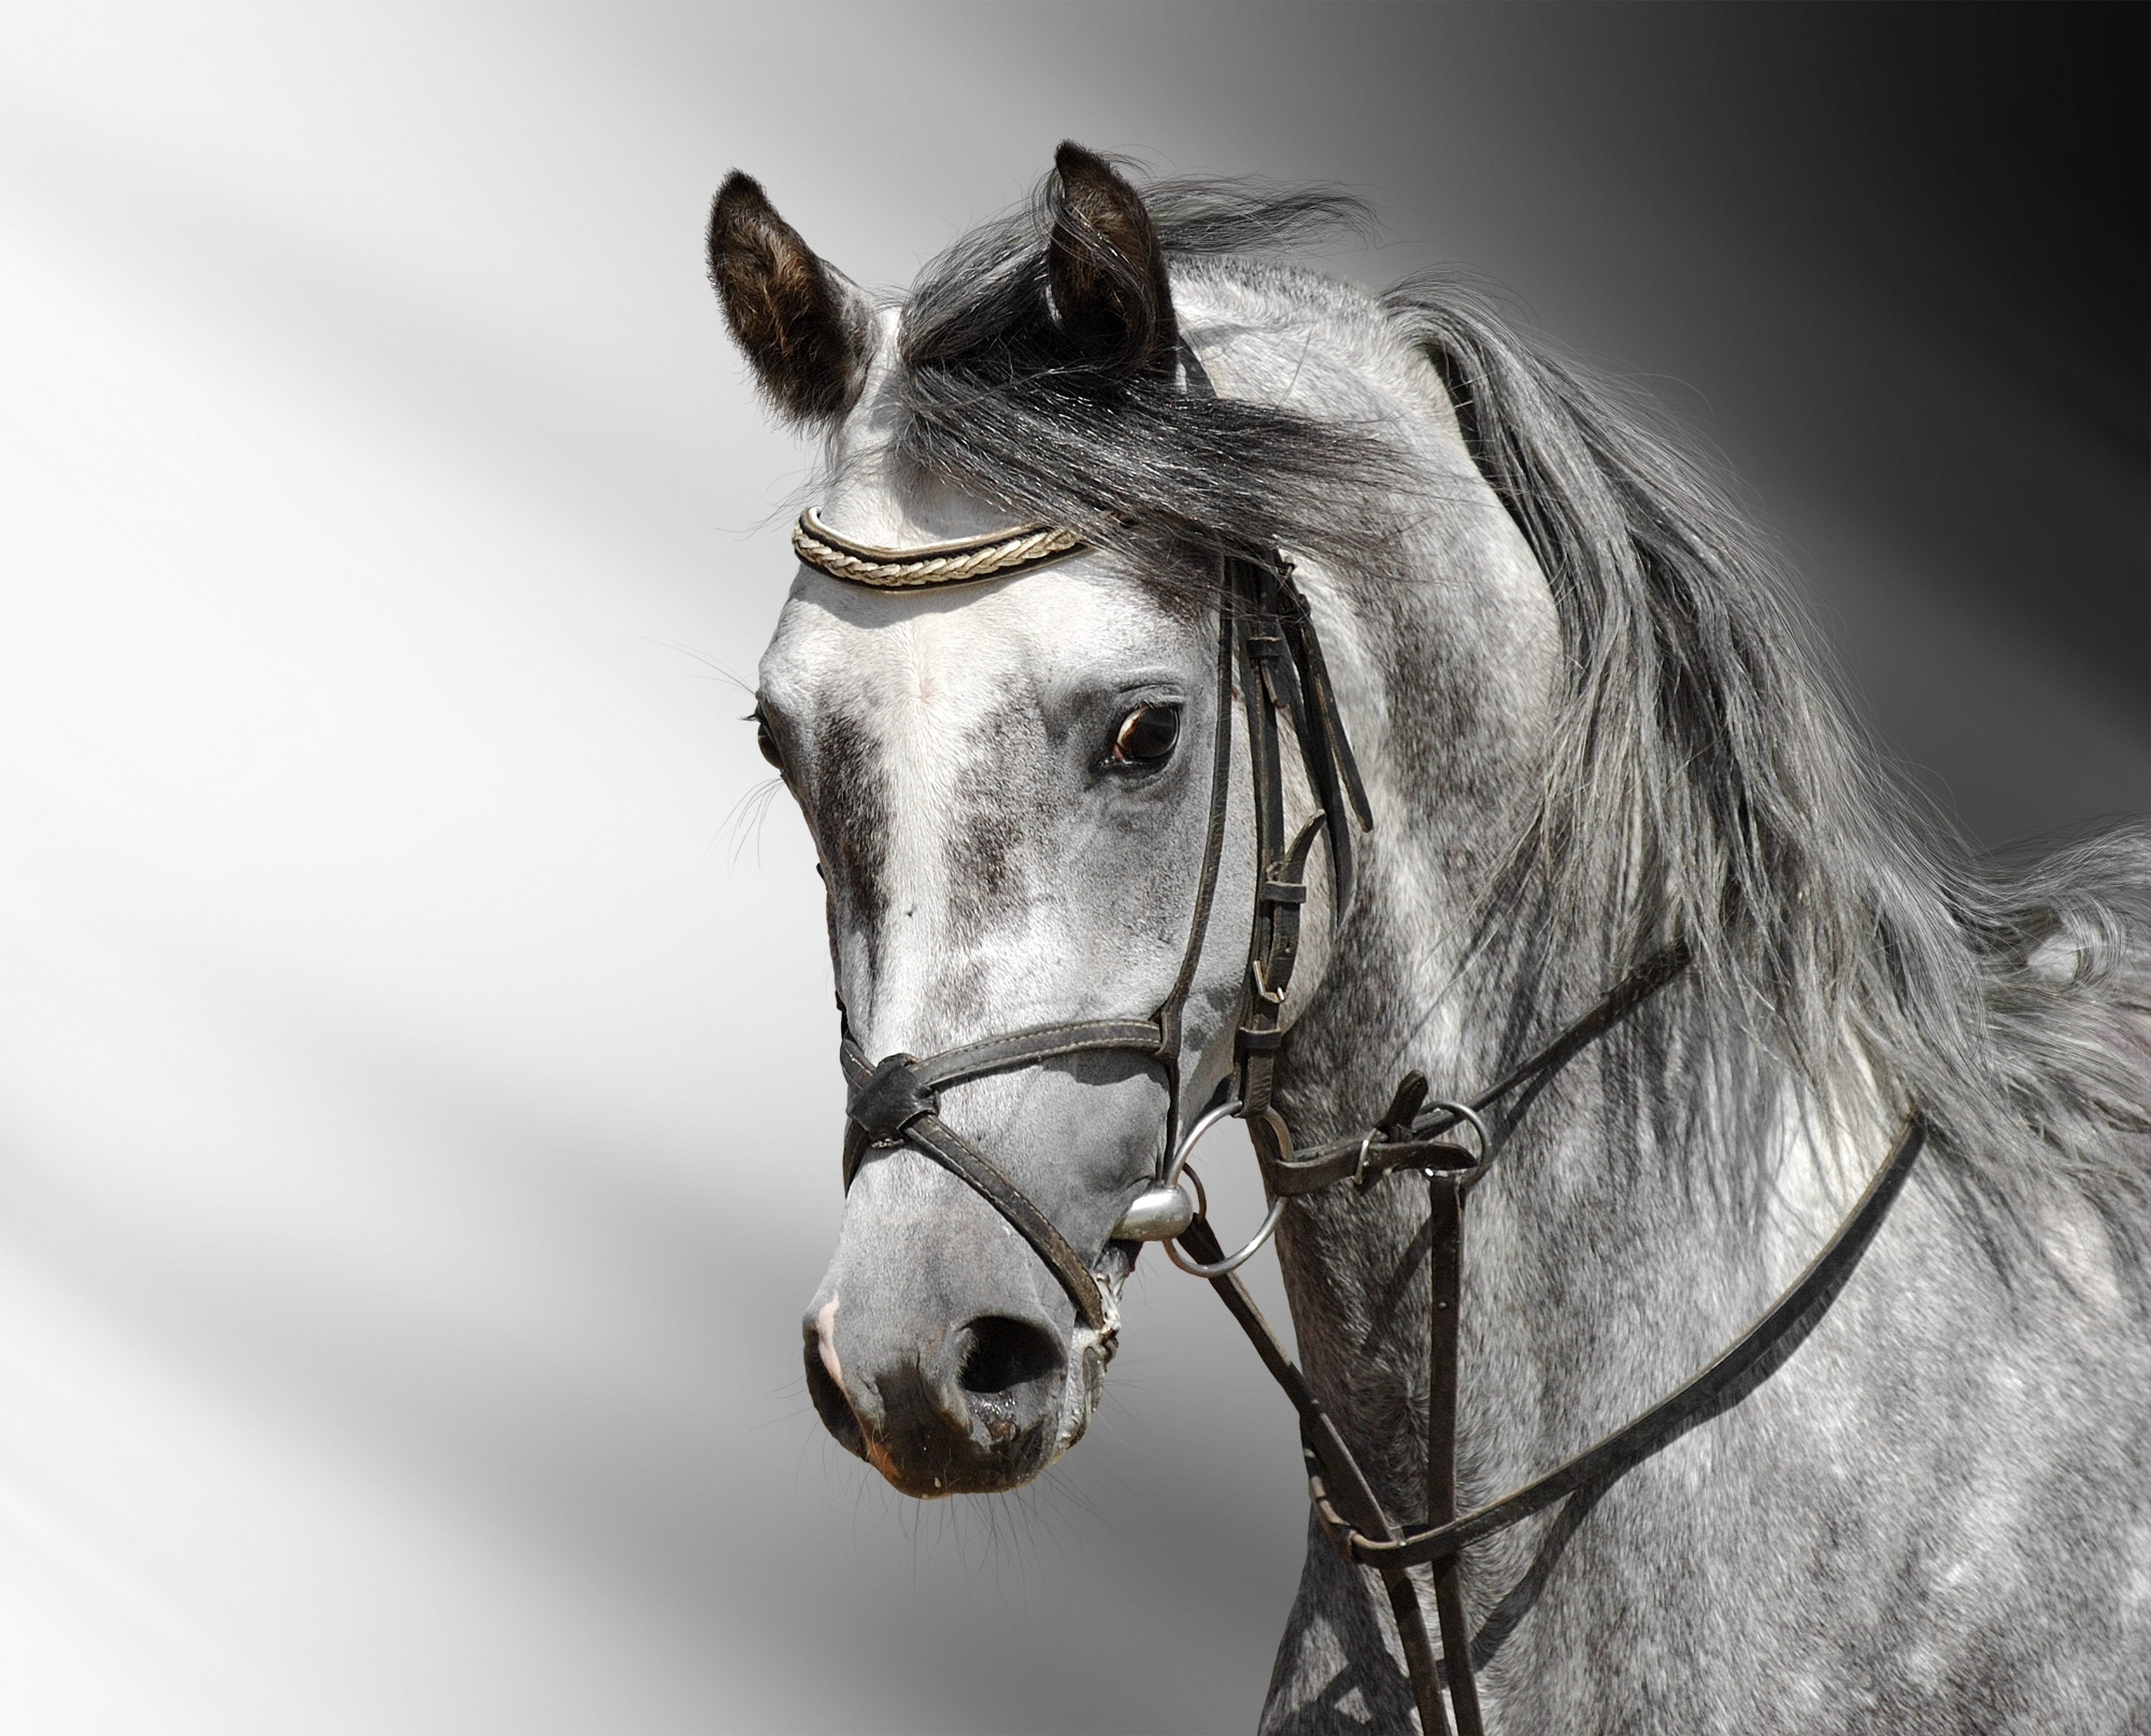 Beautiful Animal Photos That I Ve Collected Over The Years They Now Have Found A Home On Pinterest Yay Chevaux Gris Pommeles Animaux Photographie Equestre